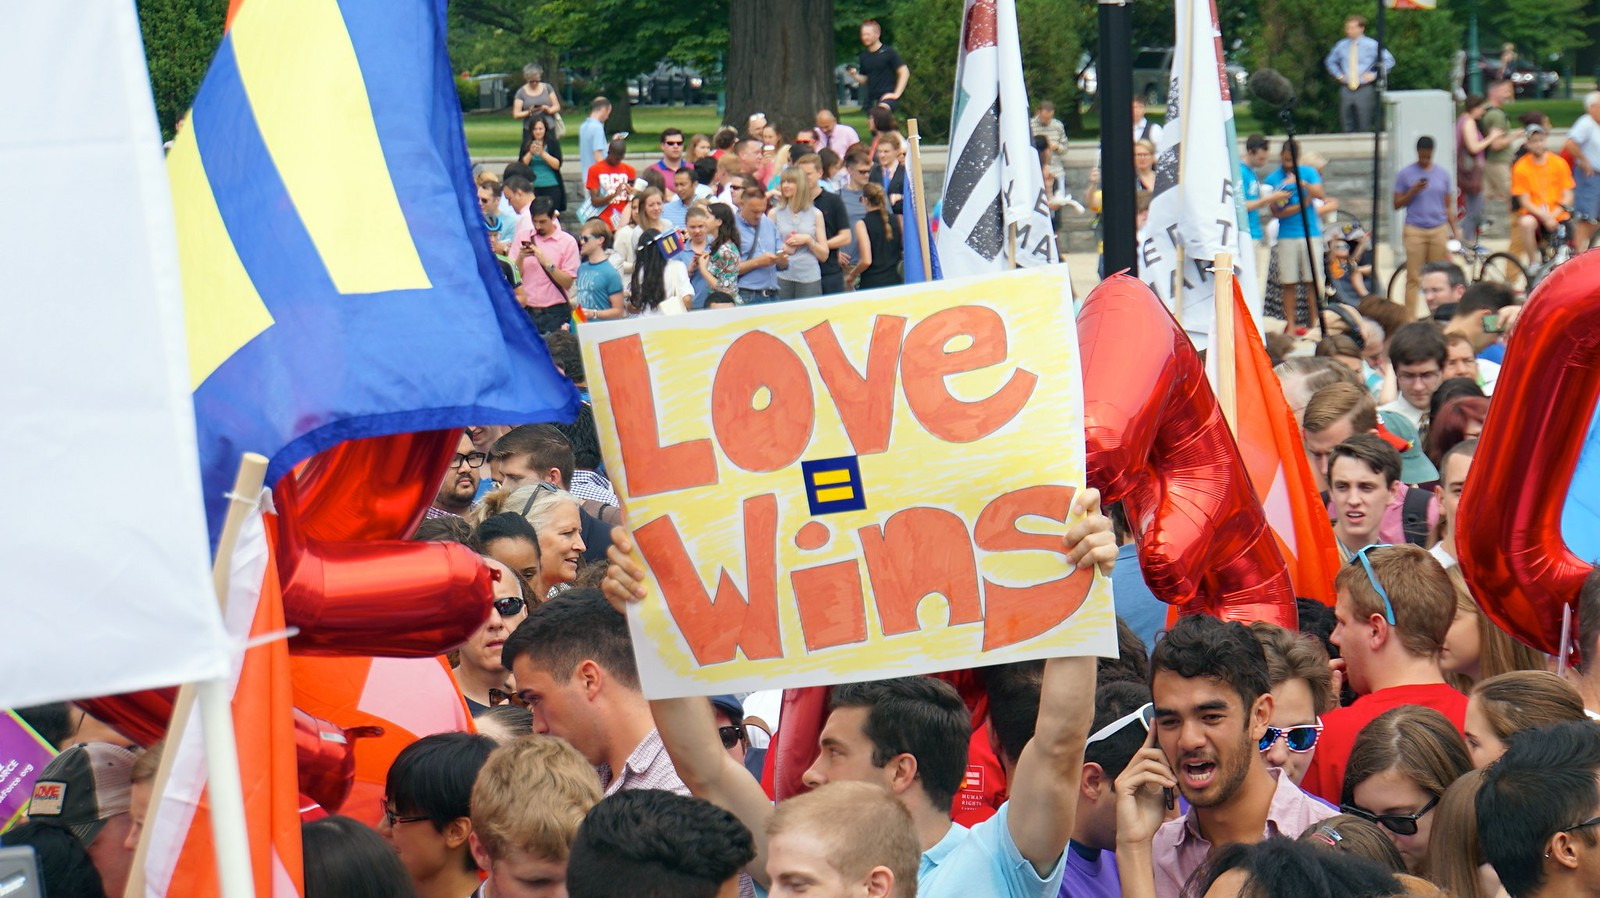 SCOTUS Marriage Equality 2015 58130